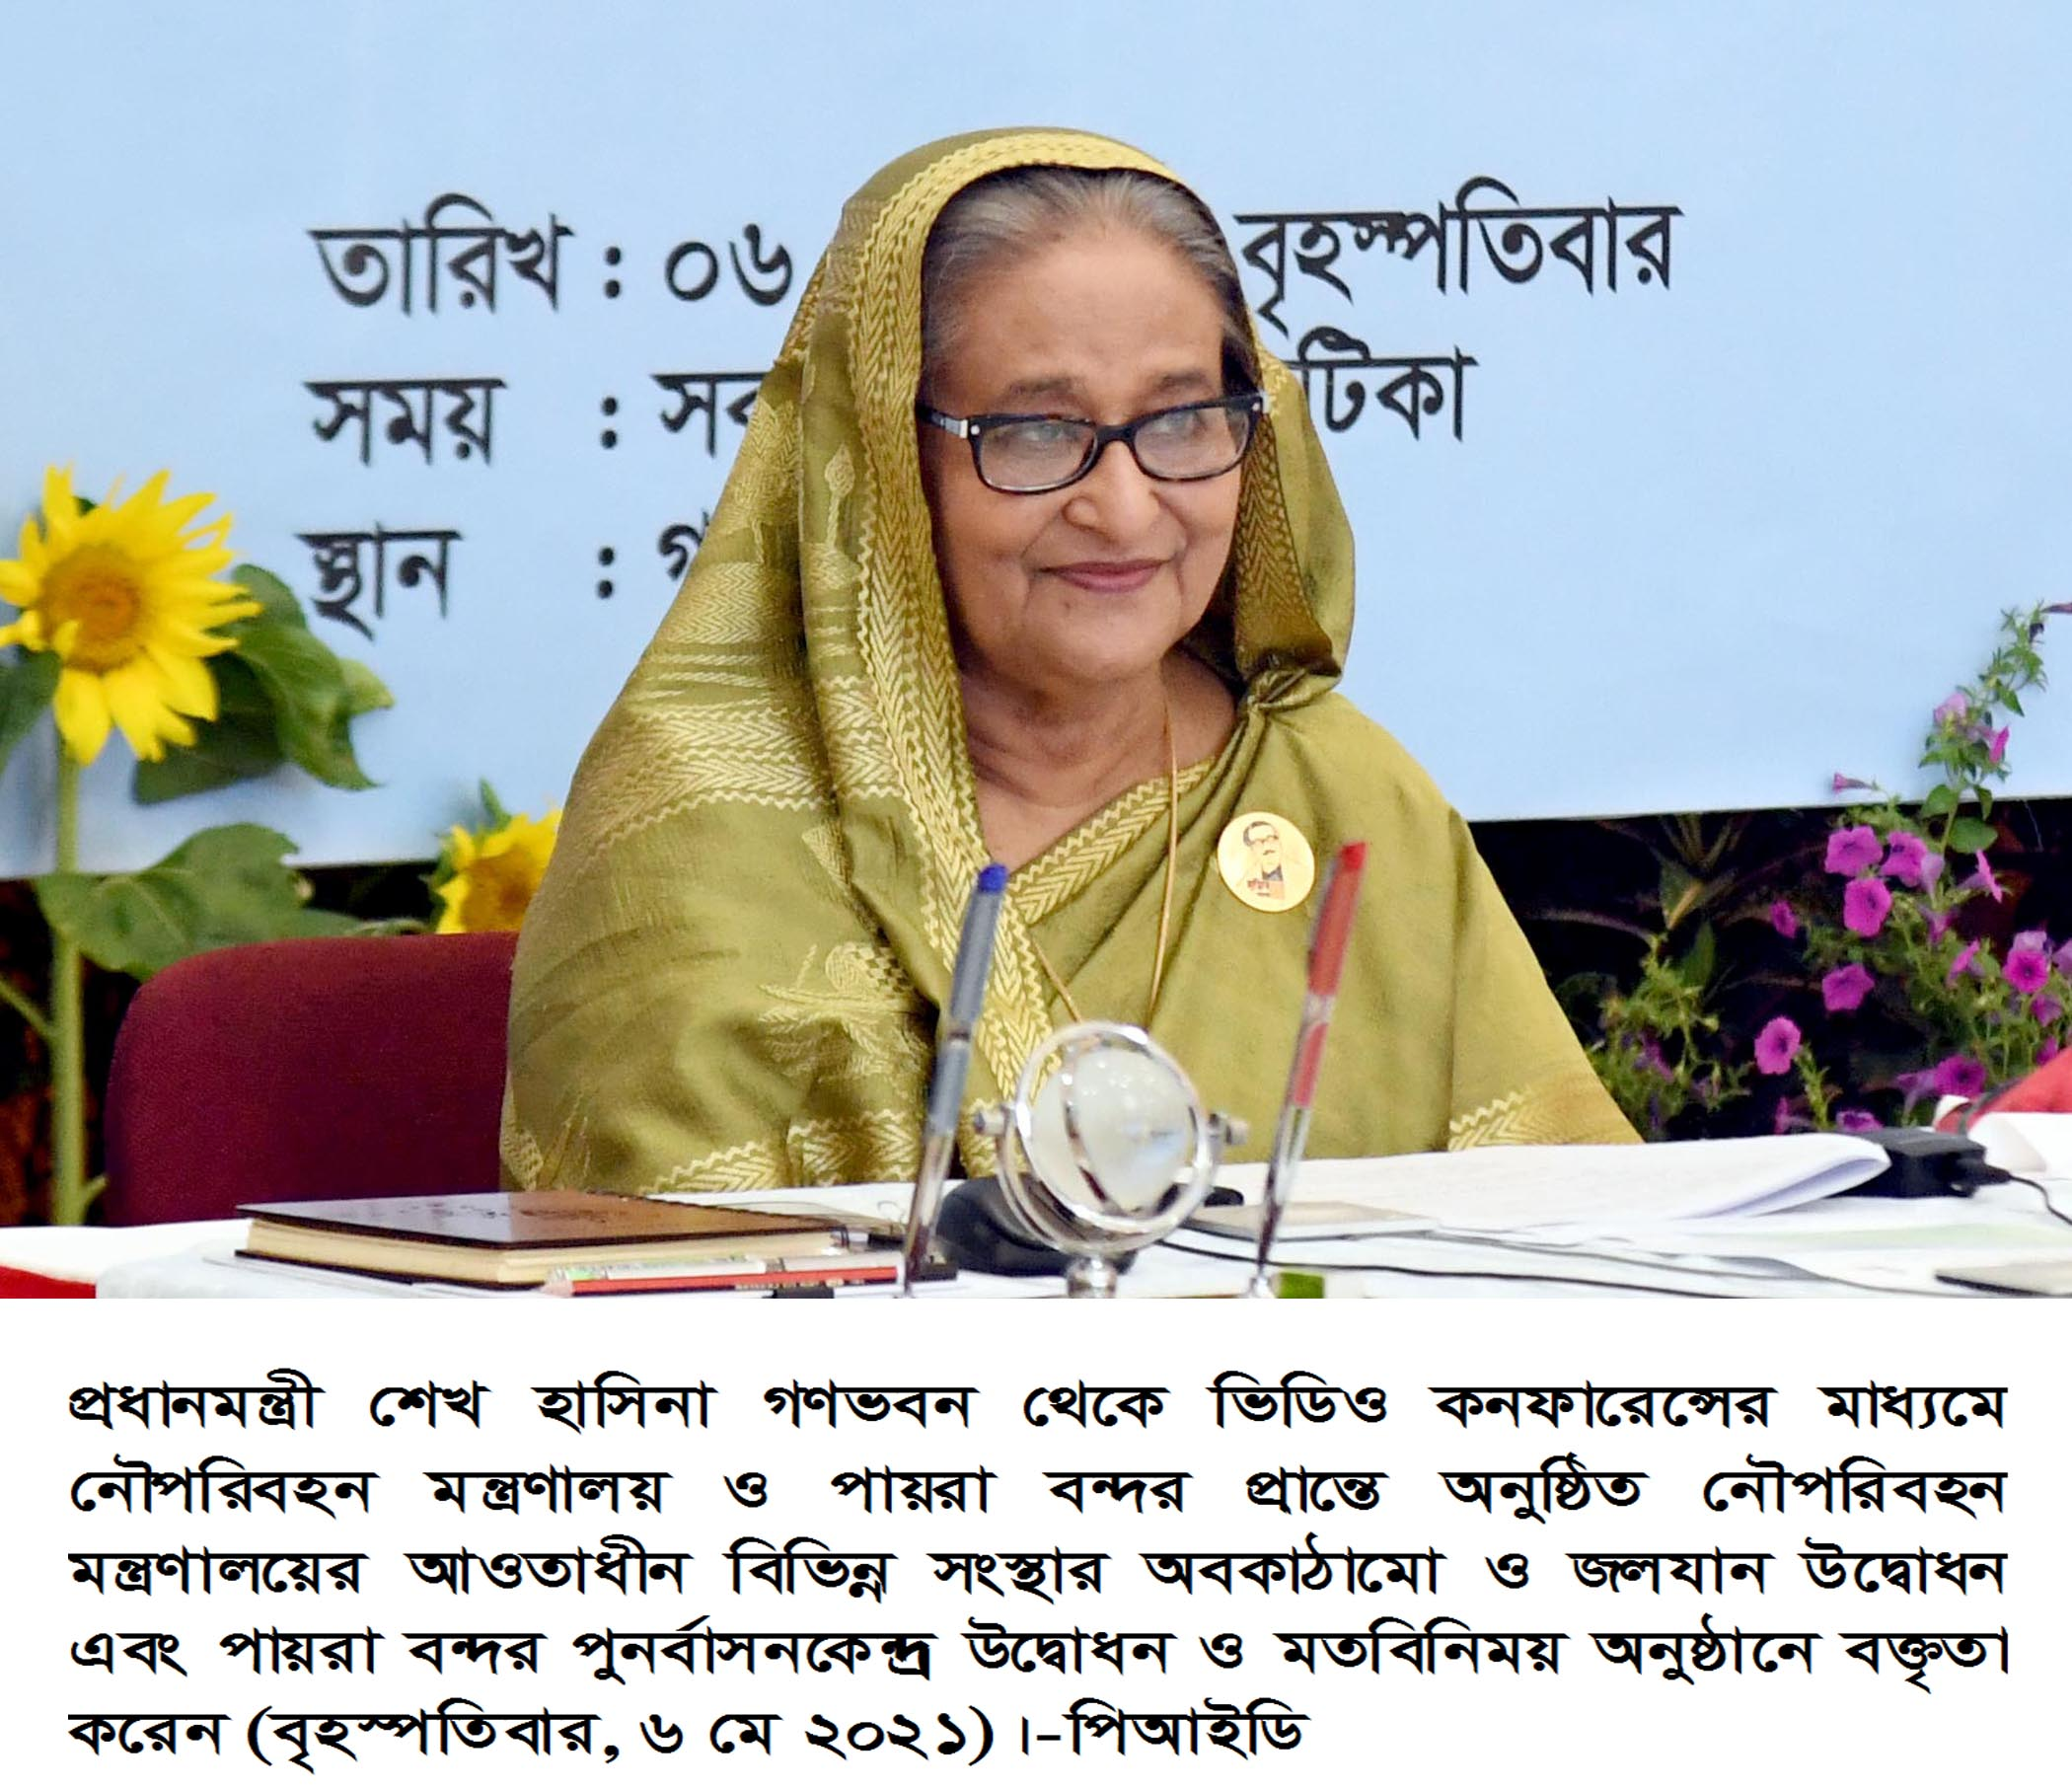 Sheikh Hasina attends crucial conference